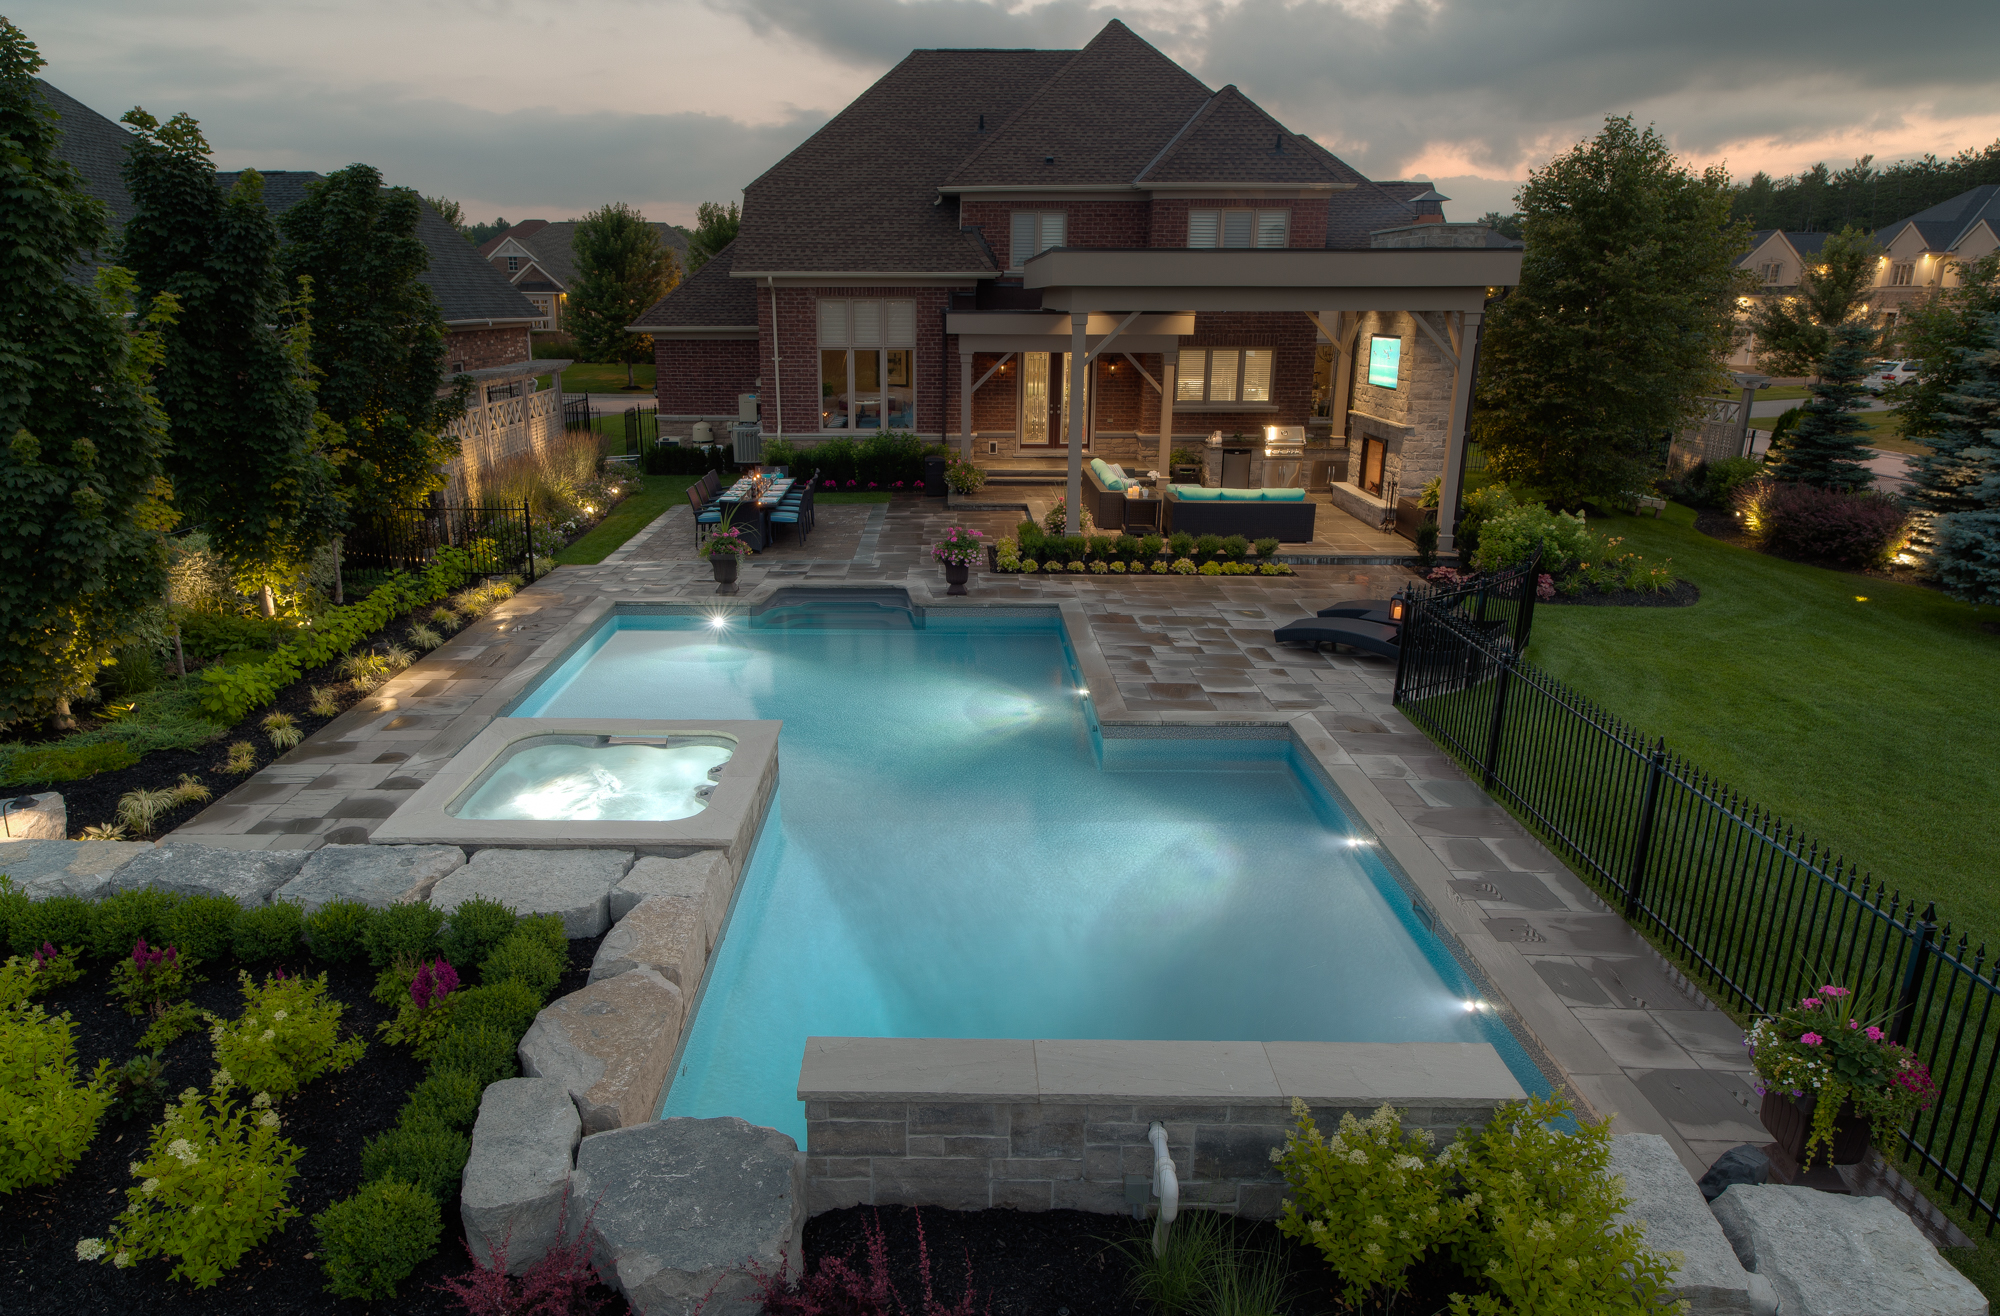 A custom designed and installed backyard swimming pool, built by Pool Craft